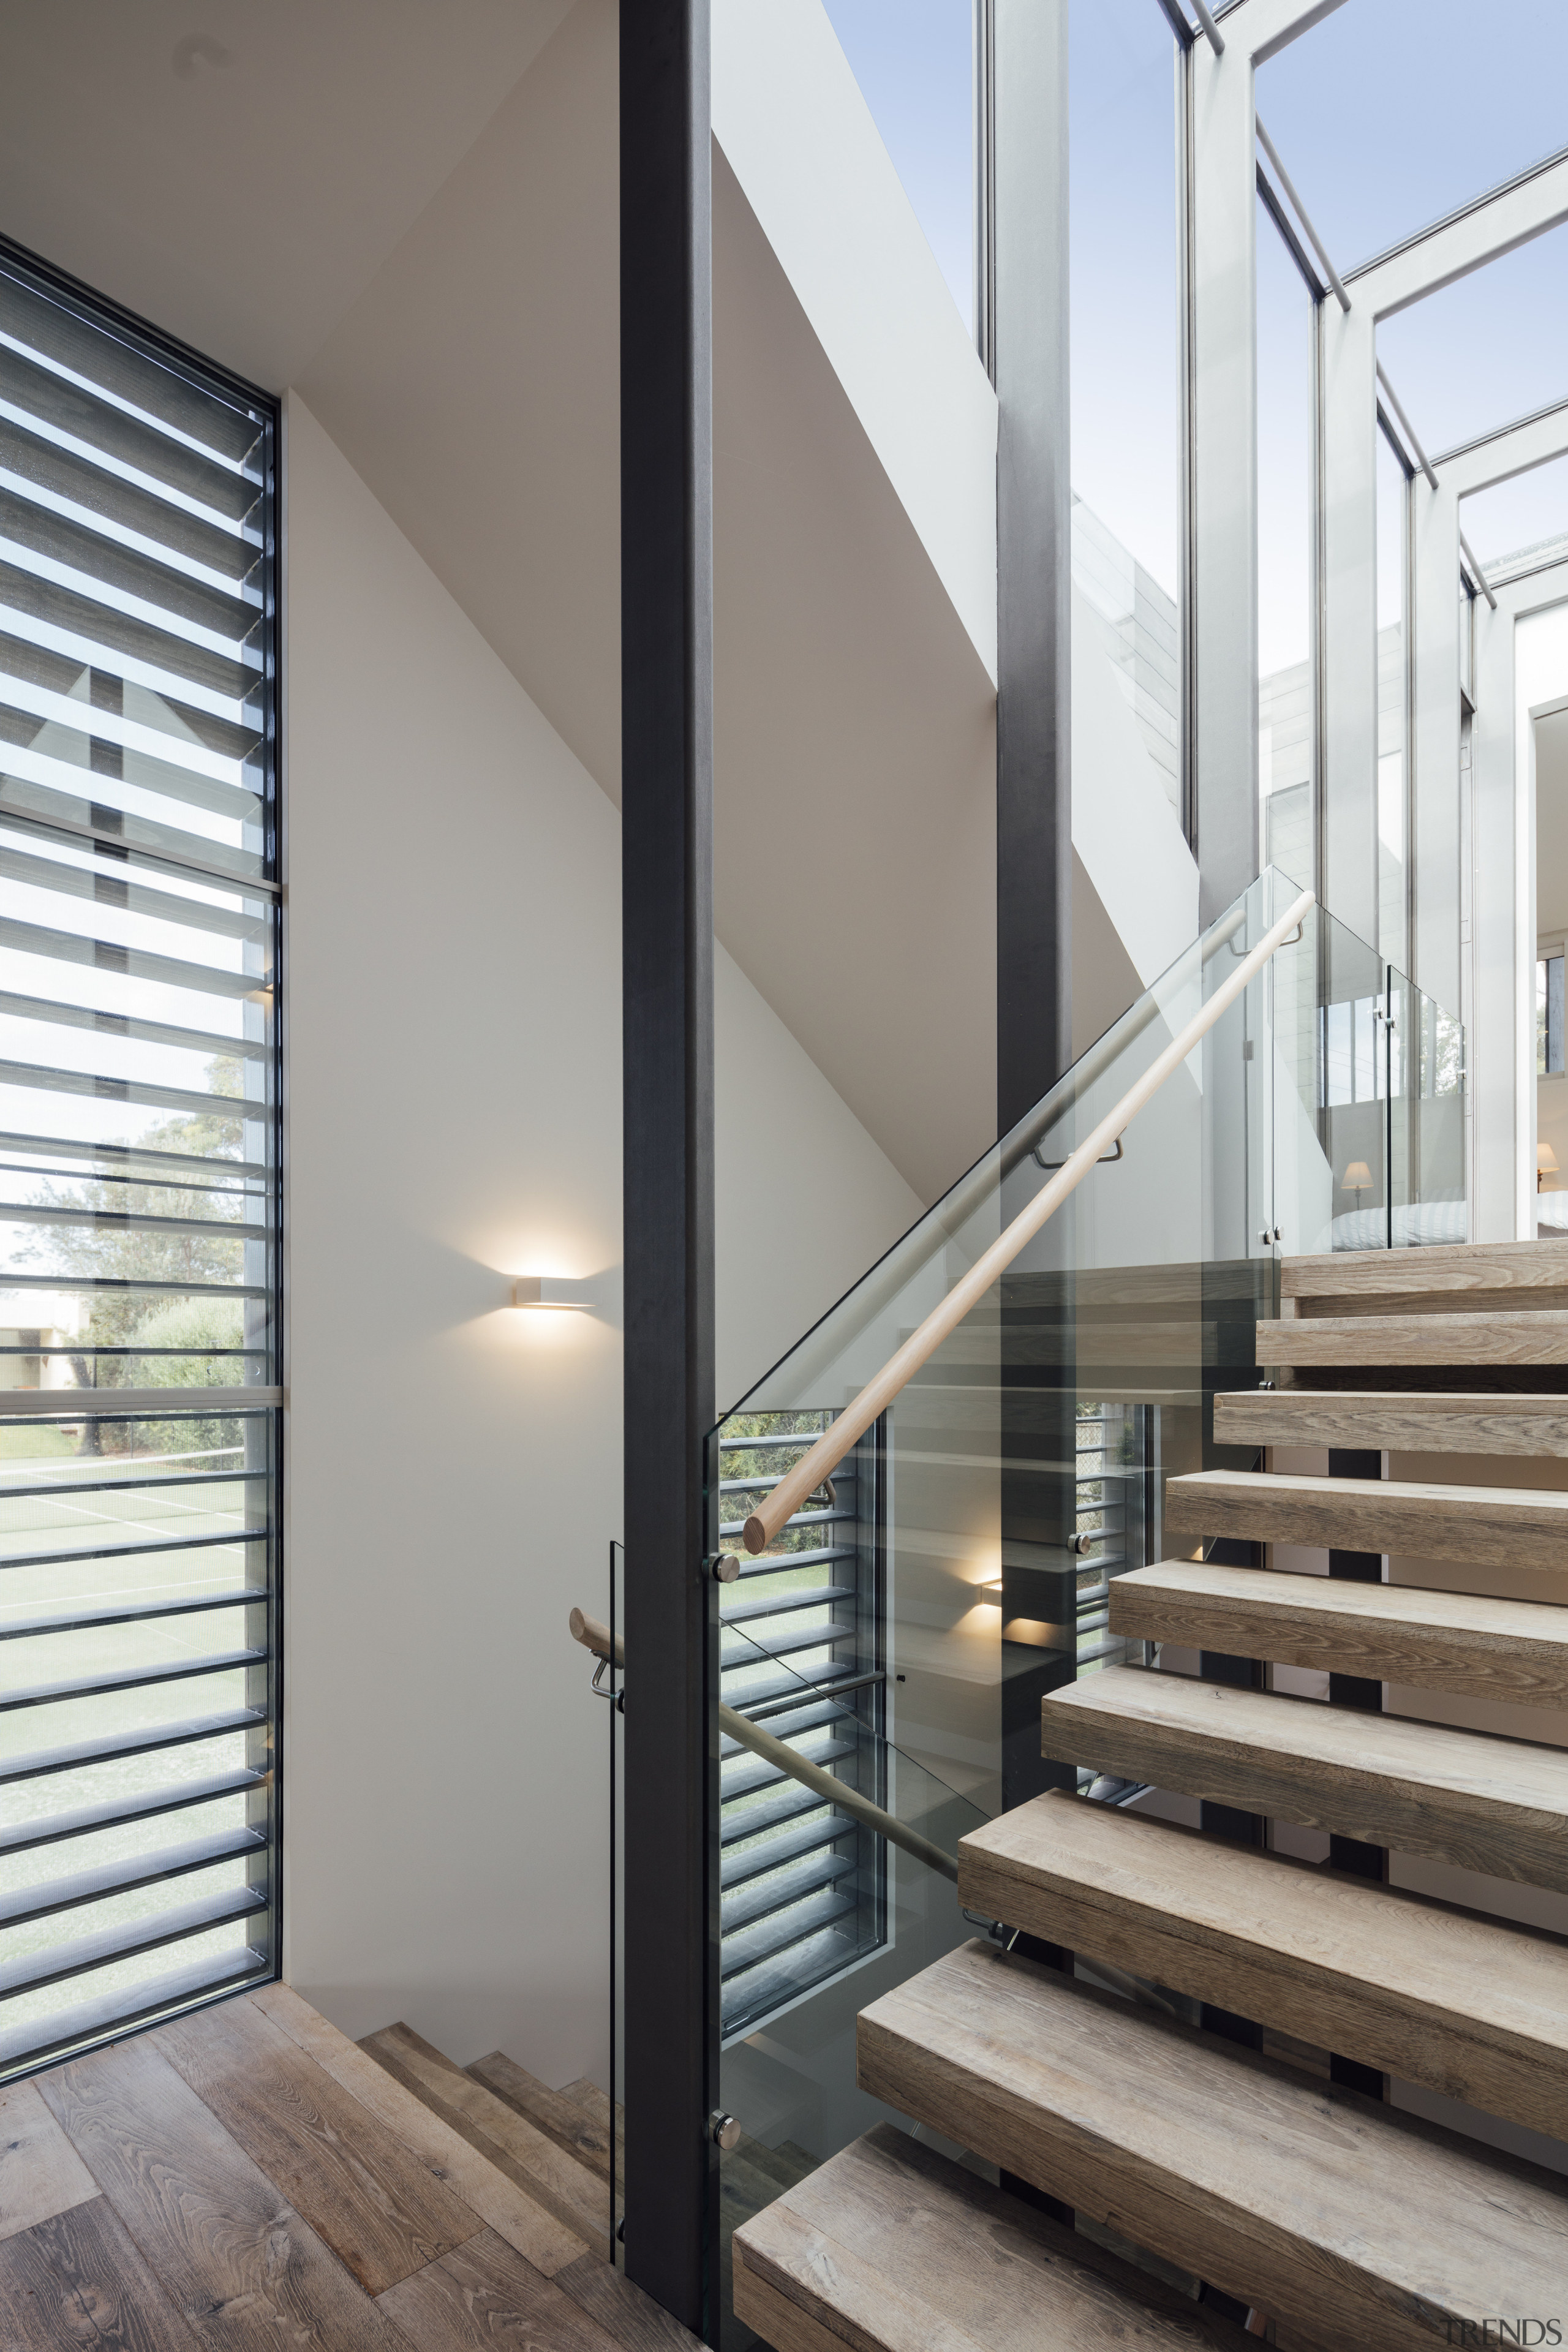 Stairwell Meets Lightwell While The Stairs Descend Architecture, Daylighting, Glass,